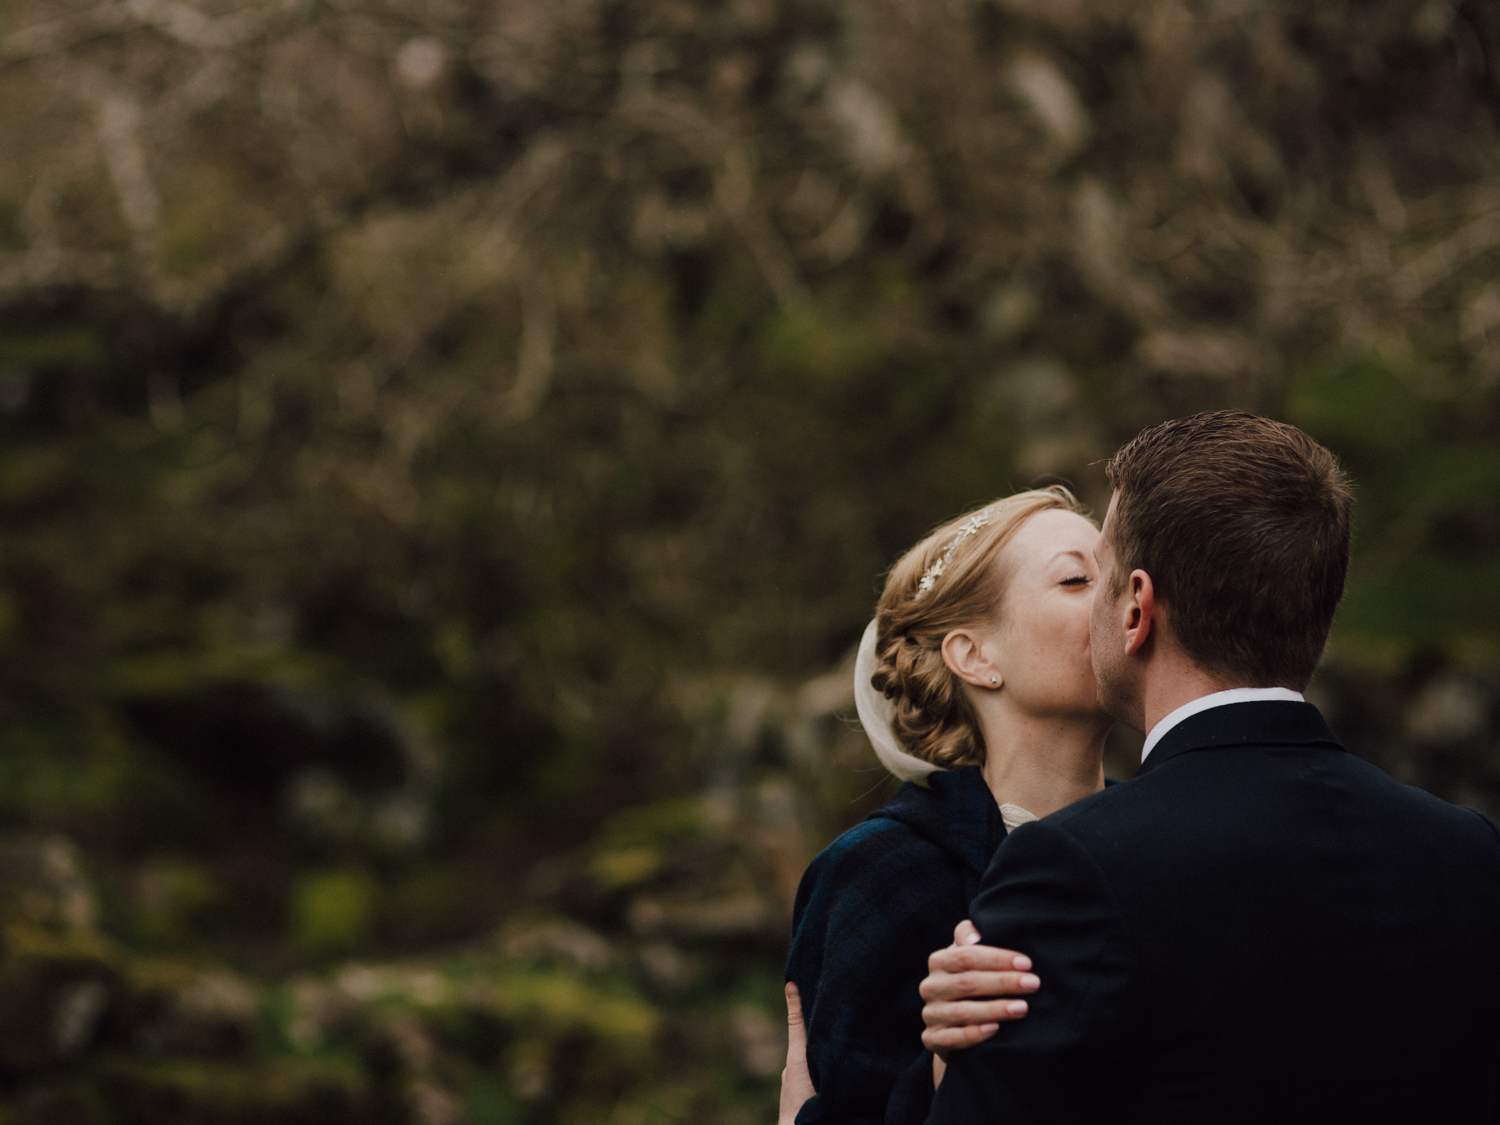 capyture-wedding-photographer-destination-elopement-isle-skye-scotland-279